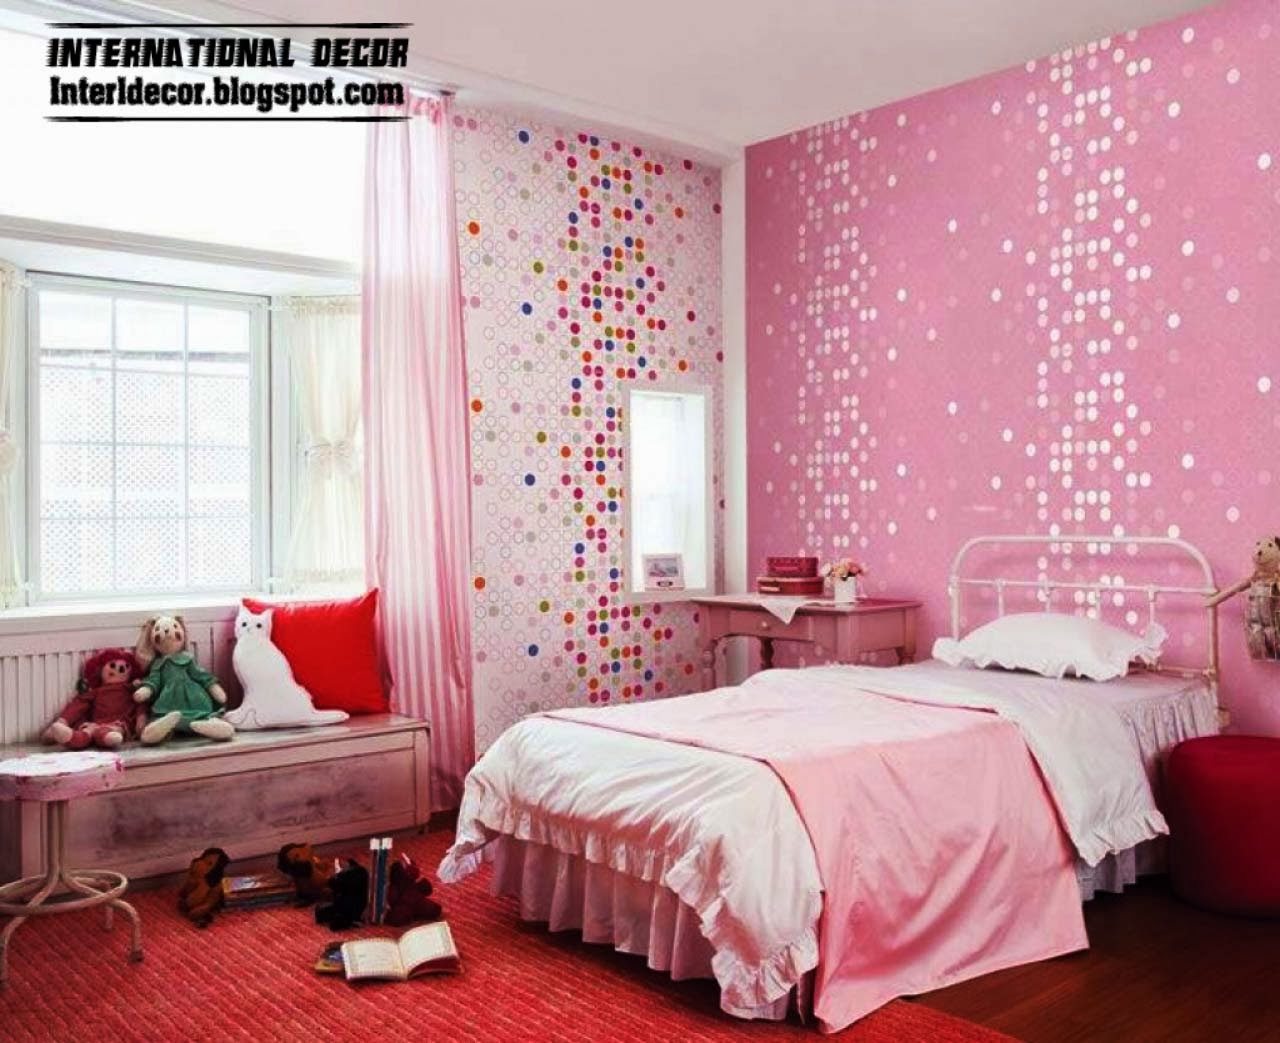 15 pink girl 39 s bedroom 2014 inspire pink room designs ideas for girls. Black Bedroom Furniture Sets. Home Design Ideas